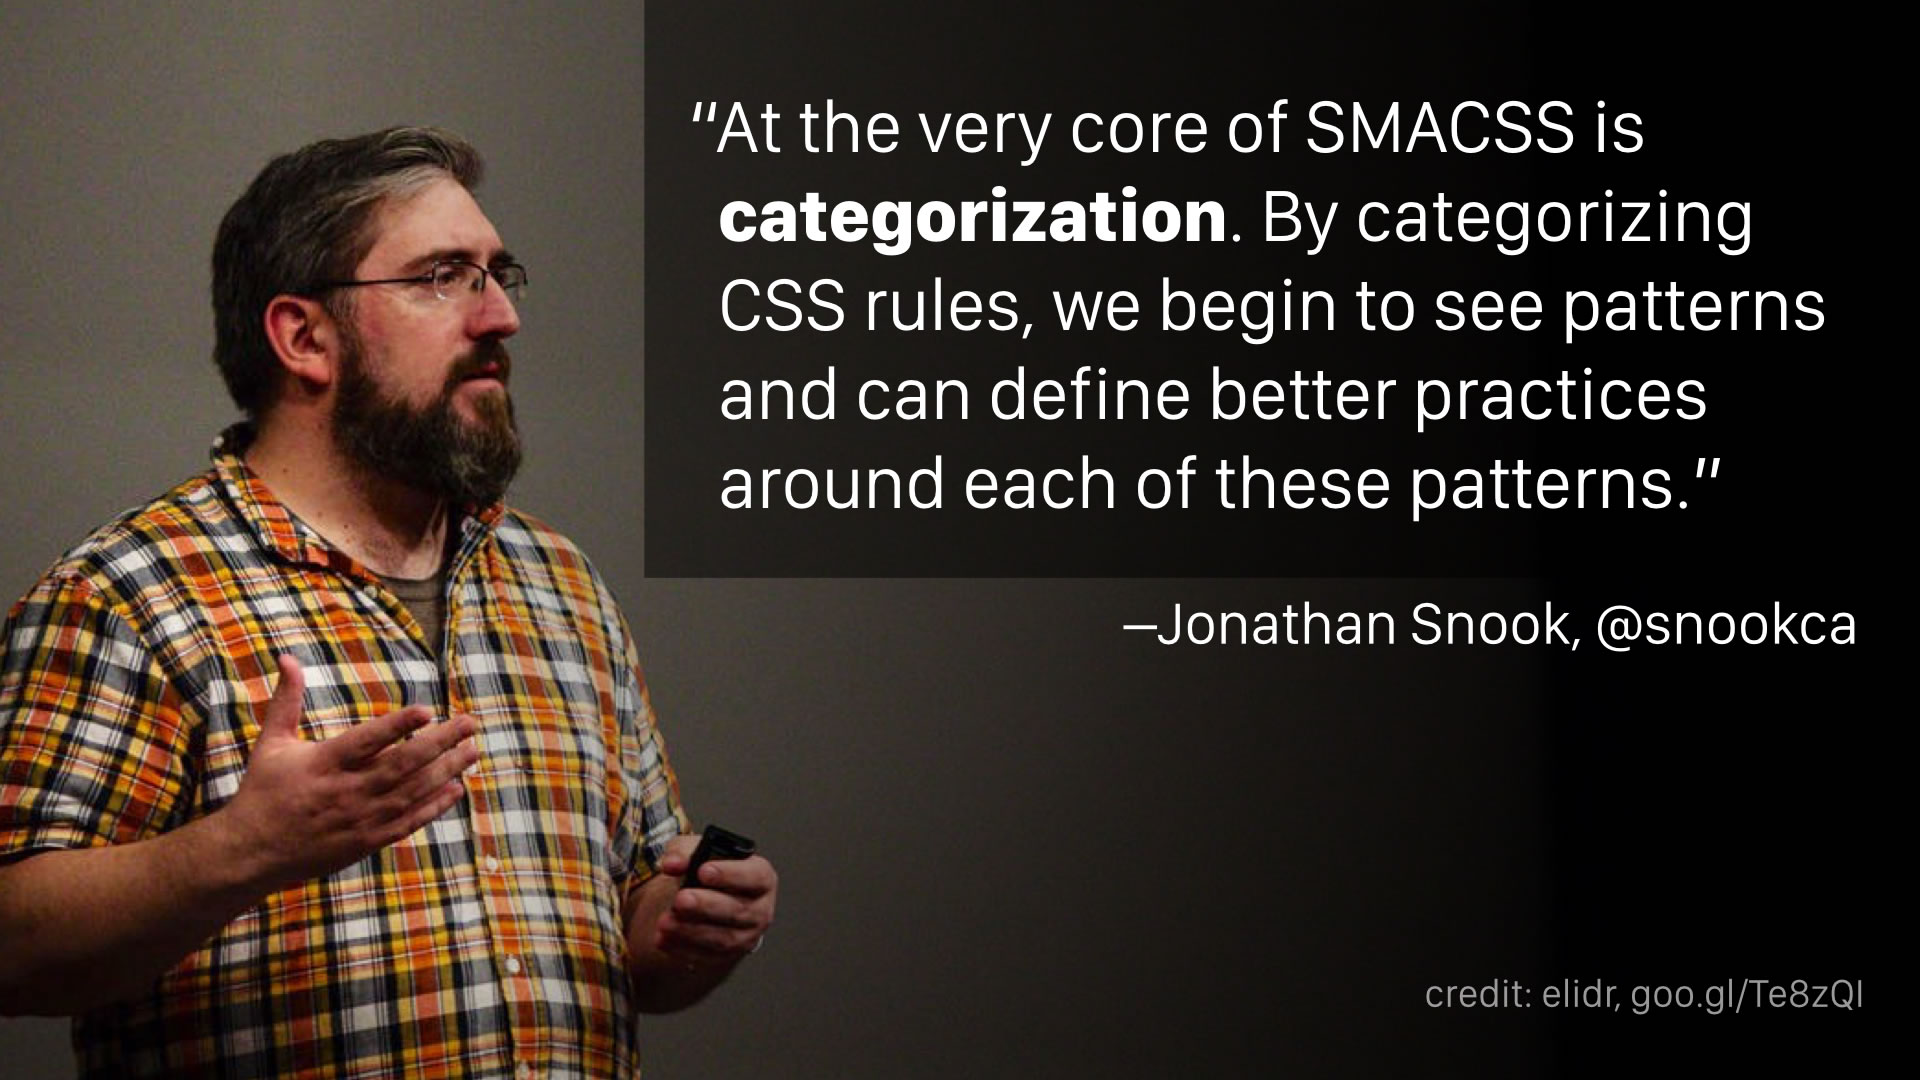 """At the very core of SMACSS is categorization. By categorizing CSS rules, we begin to see patterns and can define better practices around each of these patterns."" —Jonathan Snook"